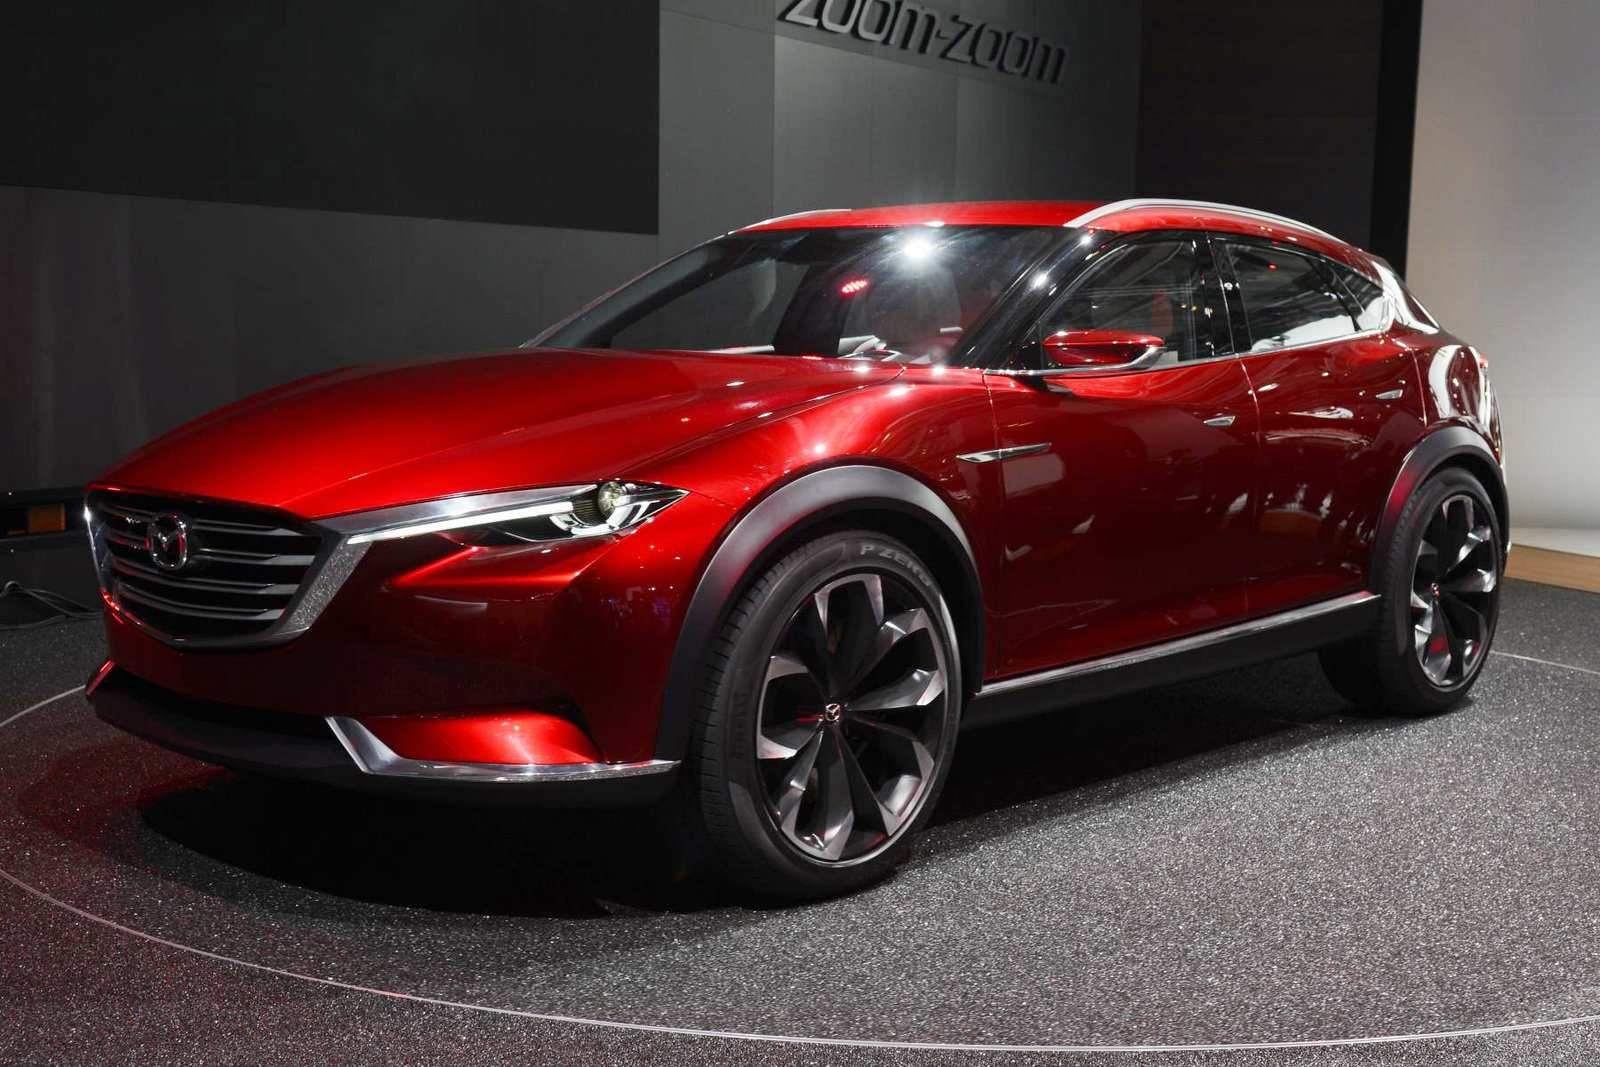 70 Gallery of Mazda Cx 3 2020 Model Price and Review with Mazda Cx 3 2020 Model